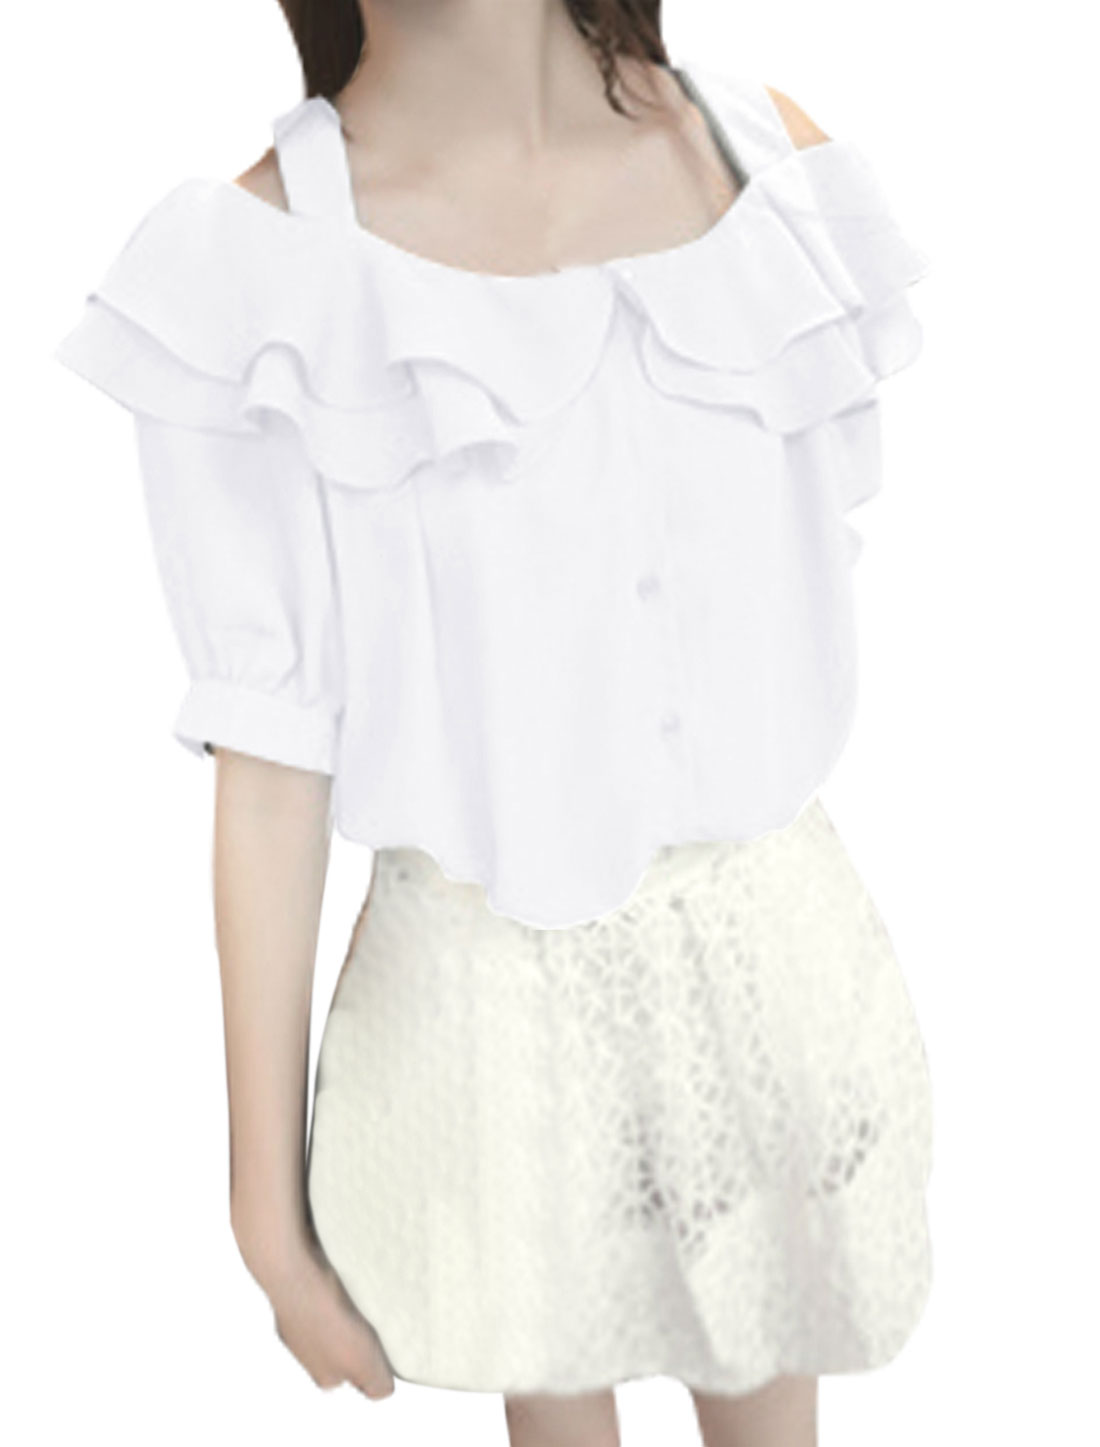 Ladies Short Sleeve Button Closure Flounced Blouse White S